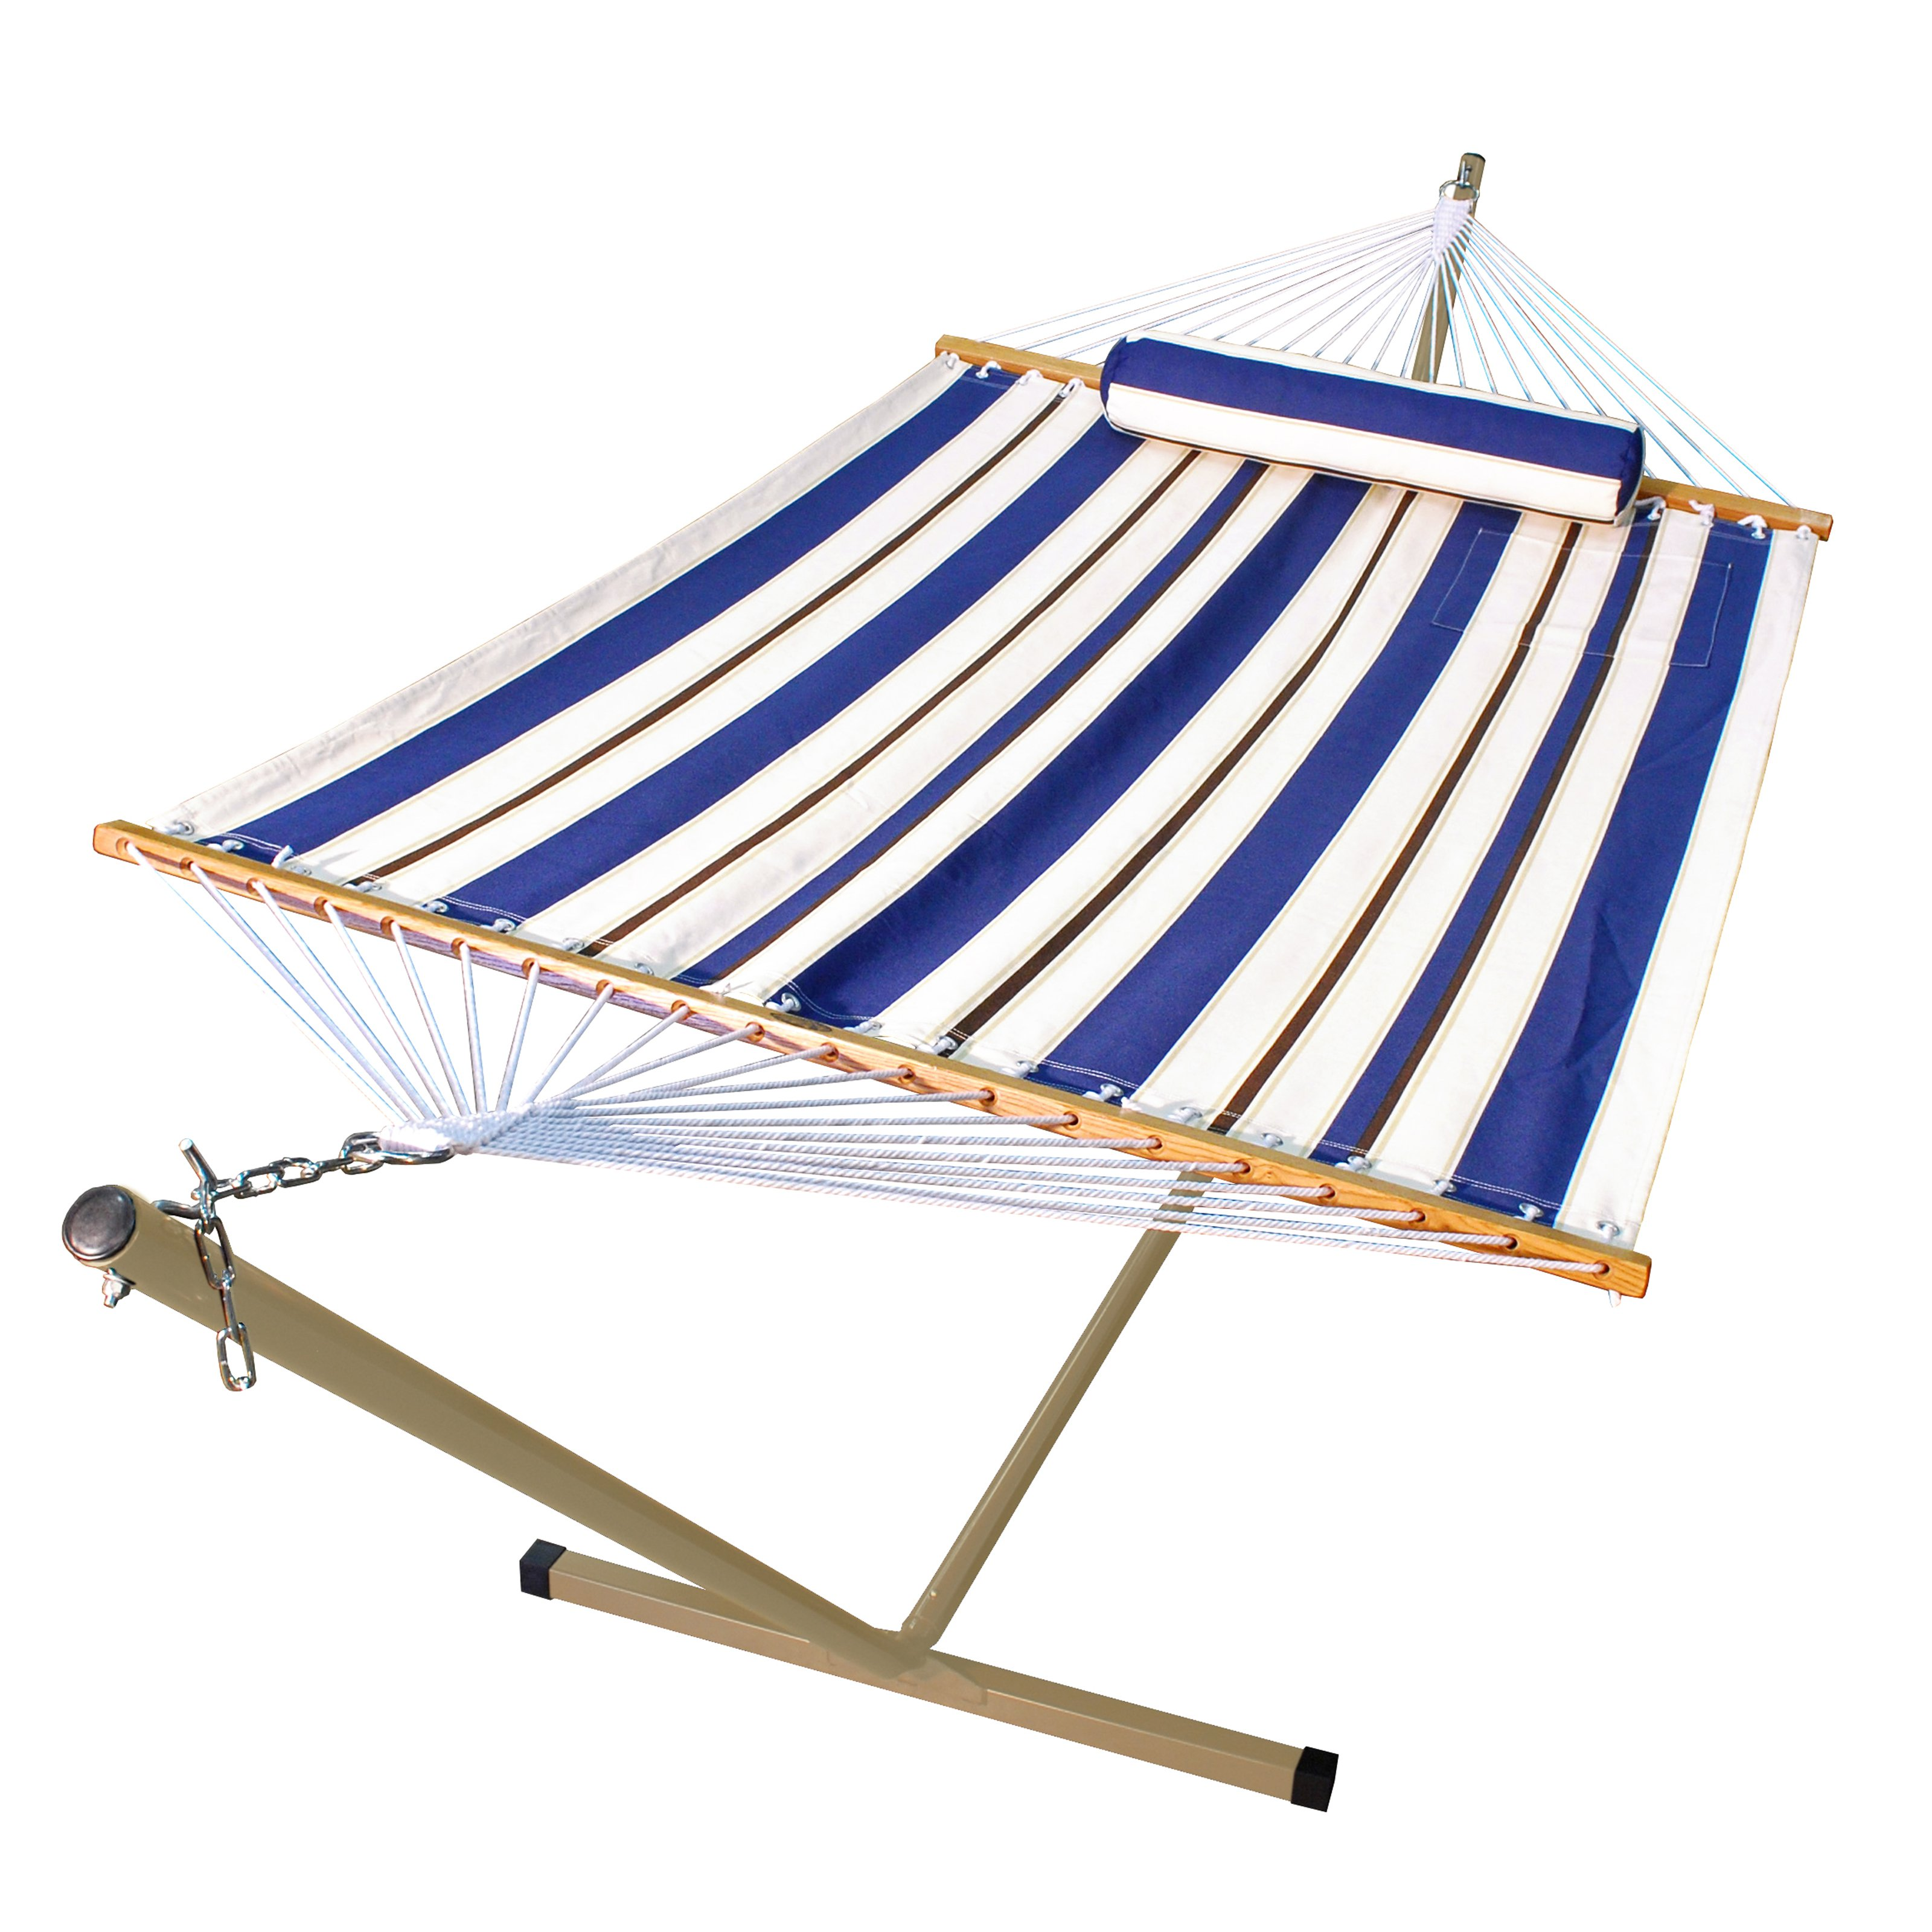 Algoma Fabric Hammock with Stand and Pillow by Algoma Net Company